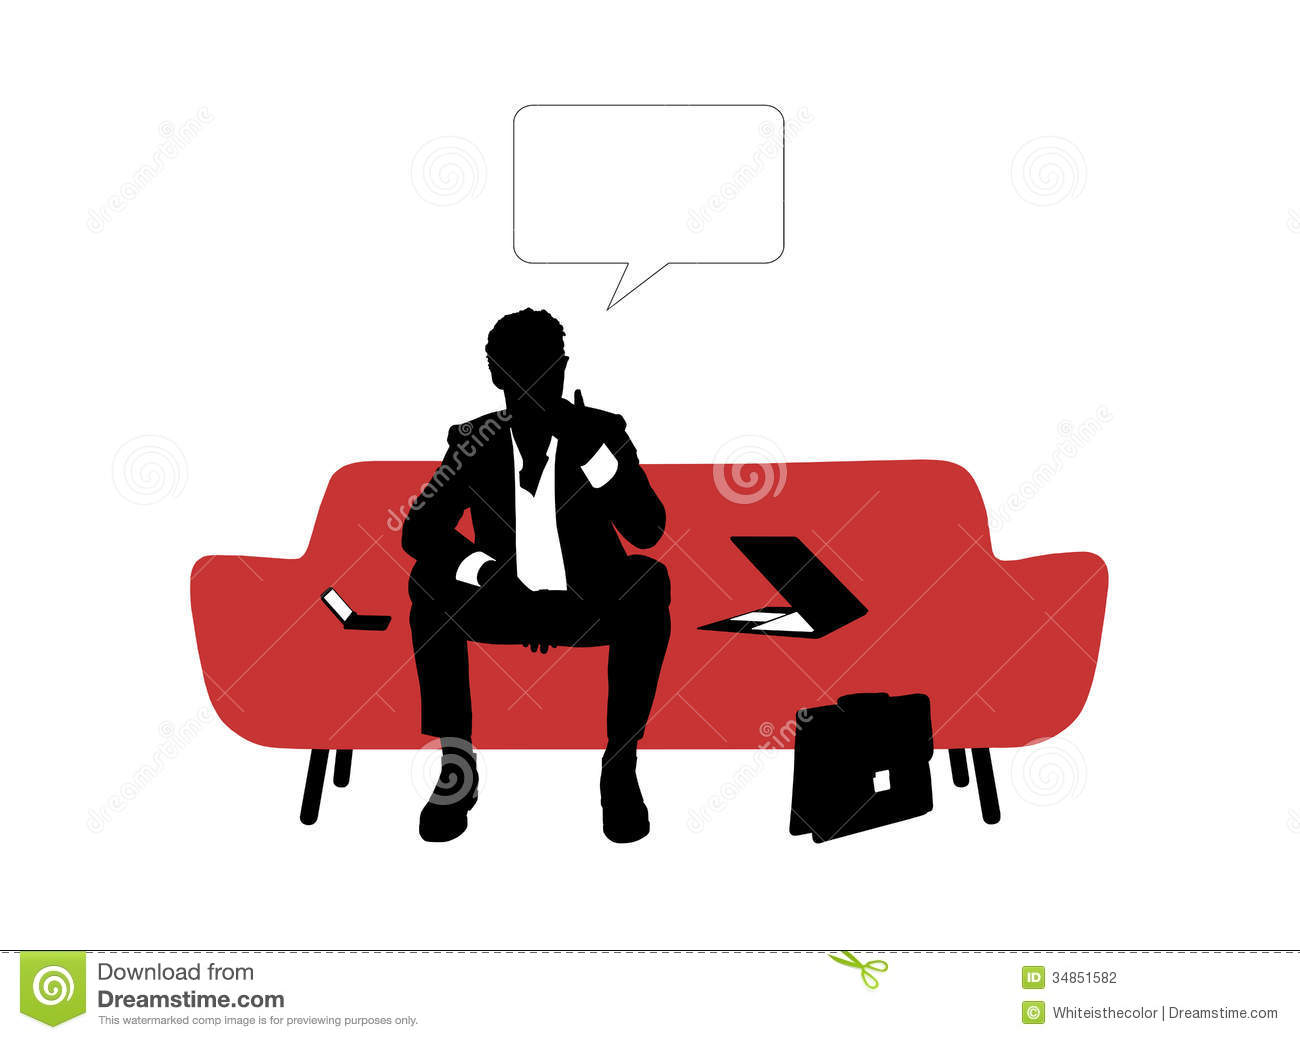 Young Businessman With Young Businessman With Young  : businessman seated red sofa thinking black white silhouette young nervous trying to find solution his business 34851582 from malemodelspicture.net size 1300 x 1040 jpeg 63kB